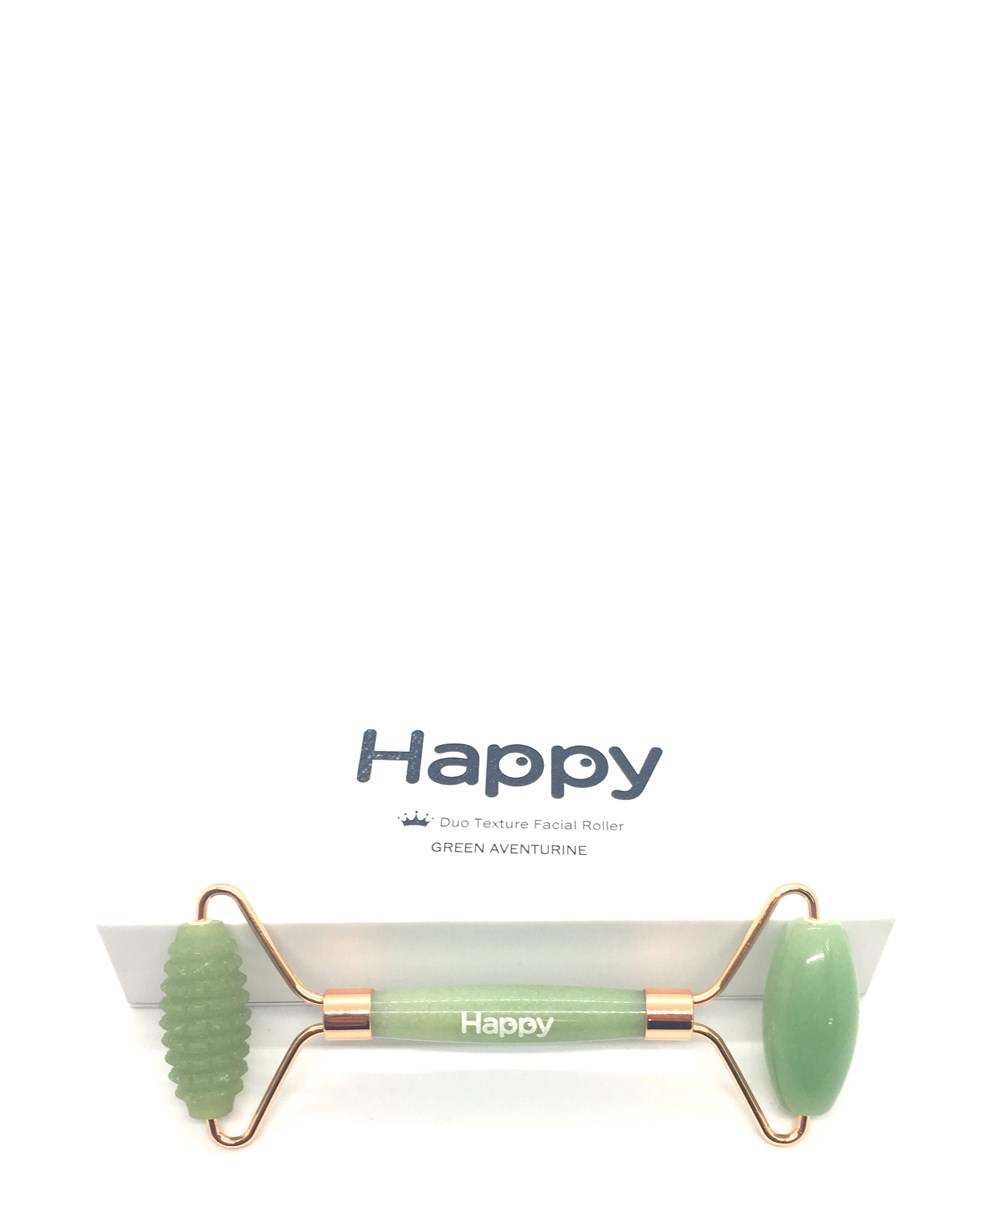 Happy Green Aventurine Duo Texture Roller Facial Massager